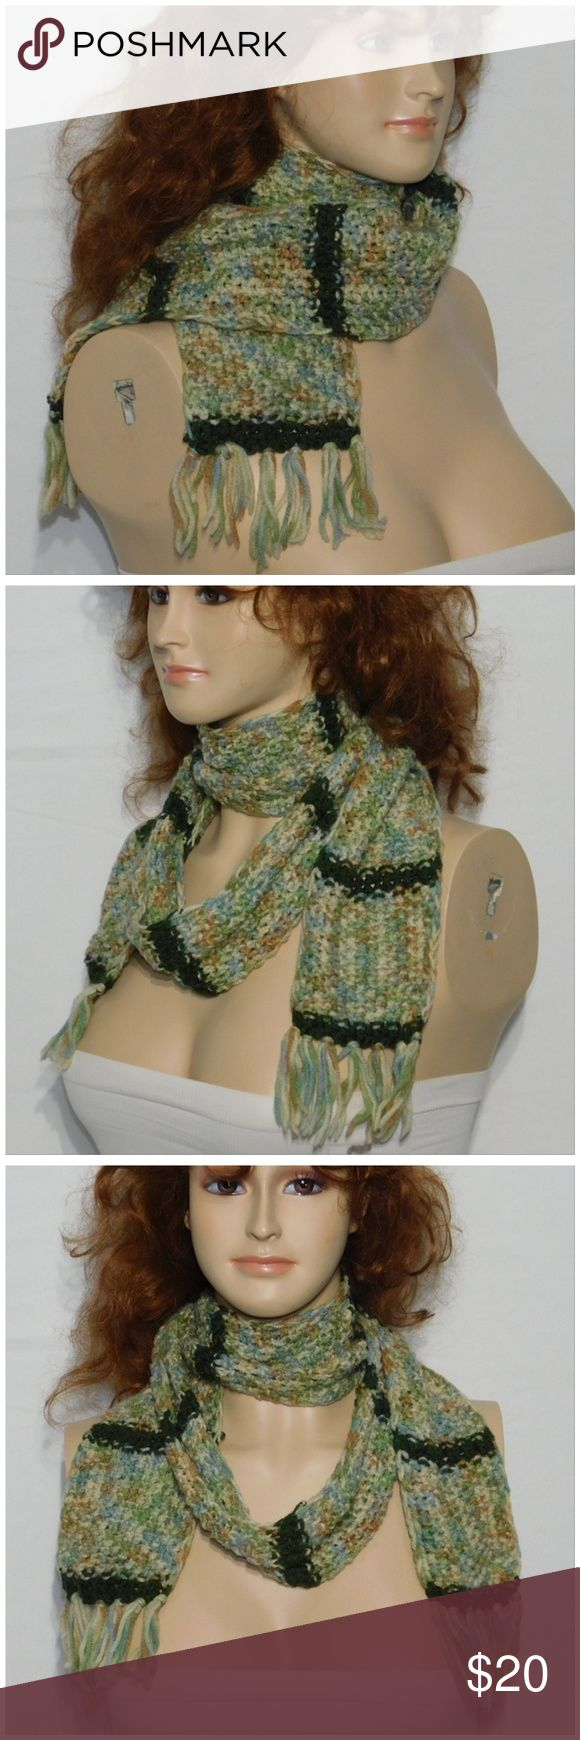 Offers of 40% Less on BUNDLES Always Accepted! Scarf, multiple wrap around styles.    Knit, soft, stretchy, machine washable. ADD to a BUNDLE! Offers of 40% Less on BUNDLES Always Accepted! Accessories Scarves & Wraps